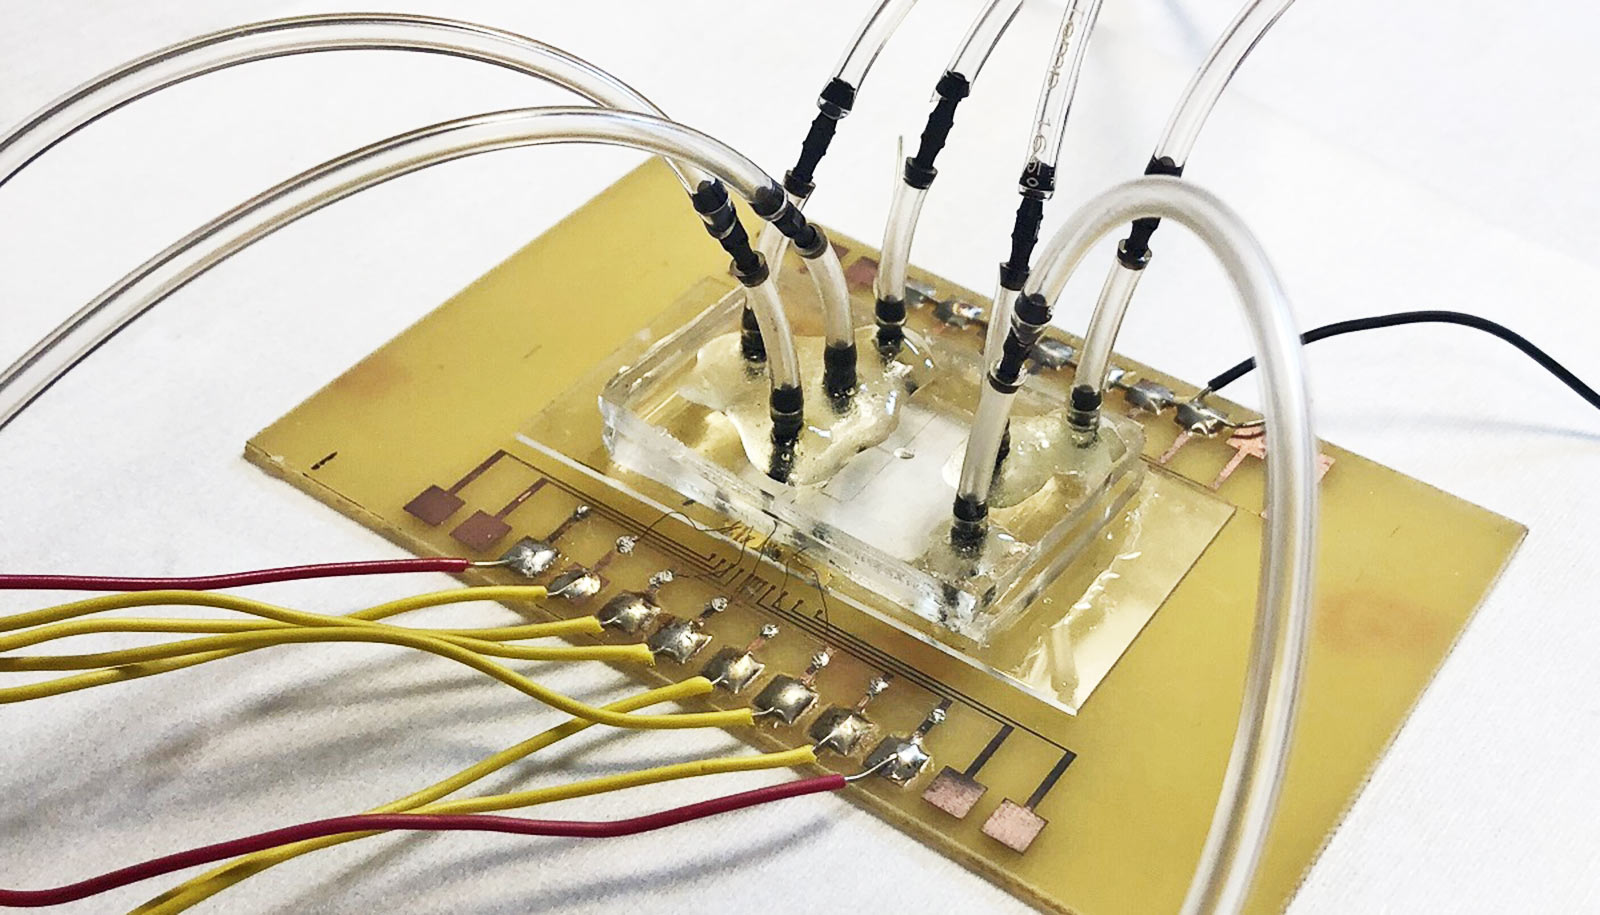 yellow-ish rectangle with a row of wires emerging from one side and clear tubes coming out from the top